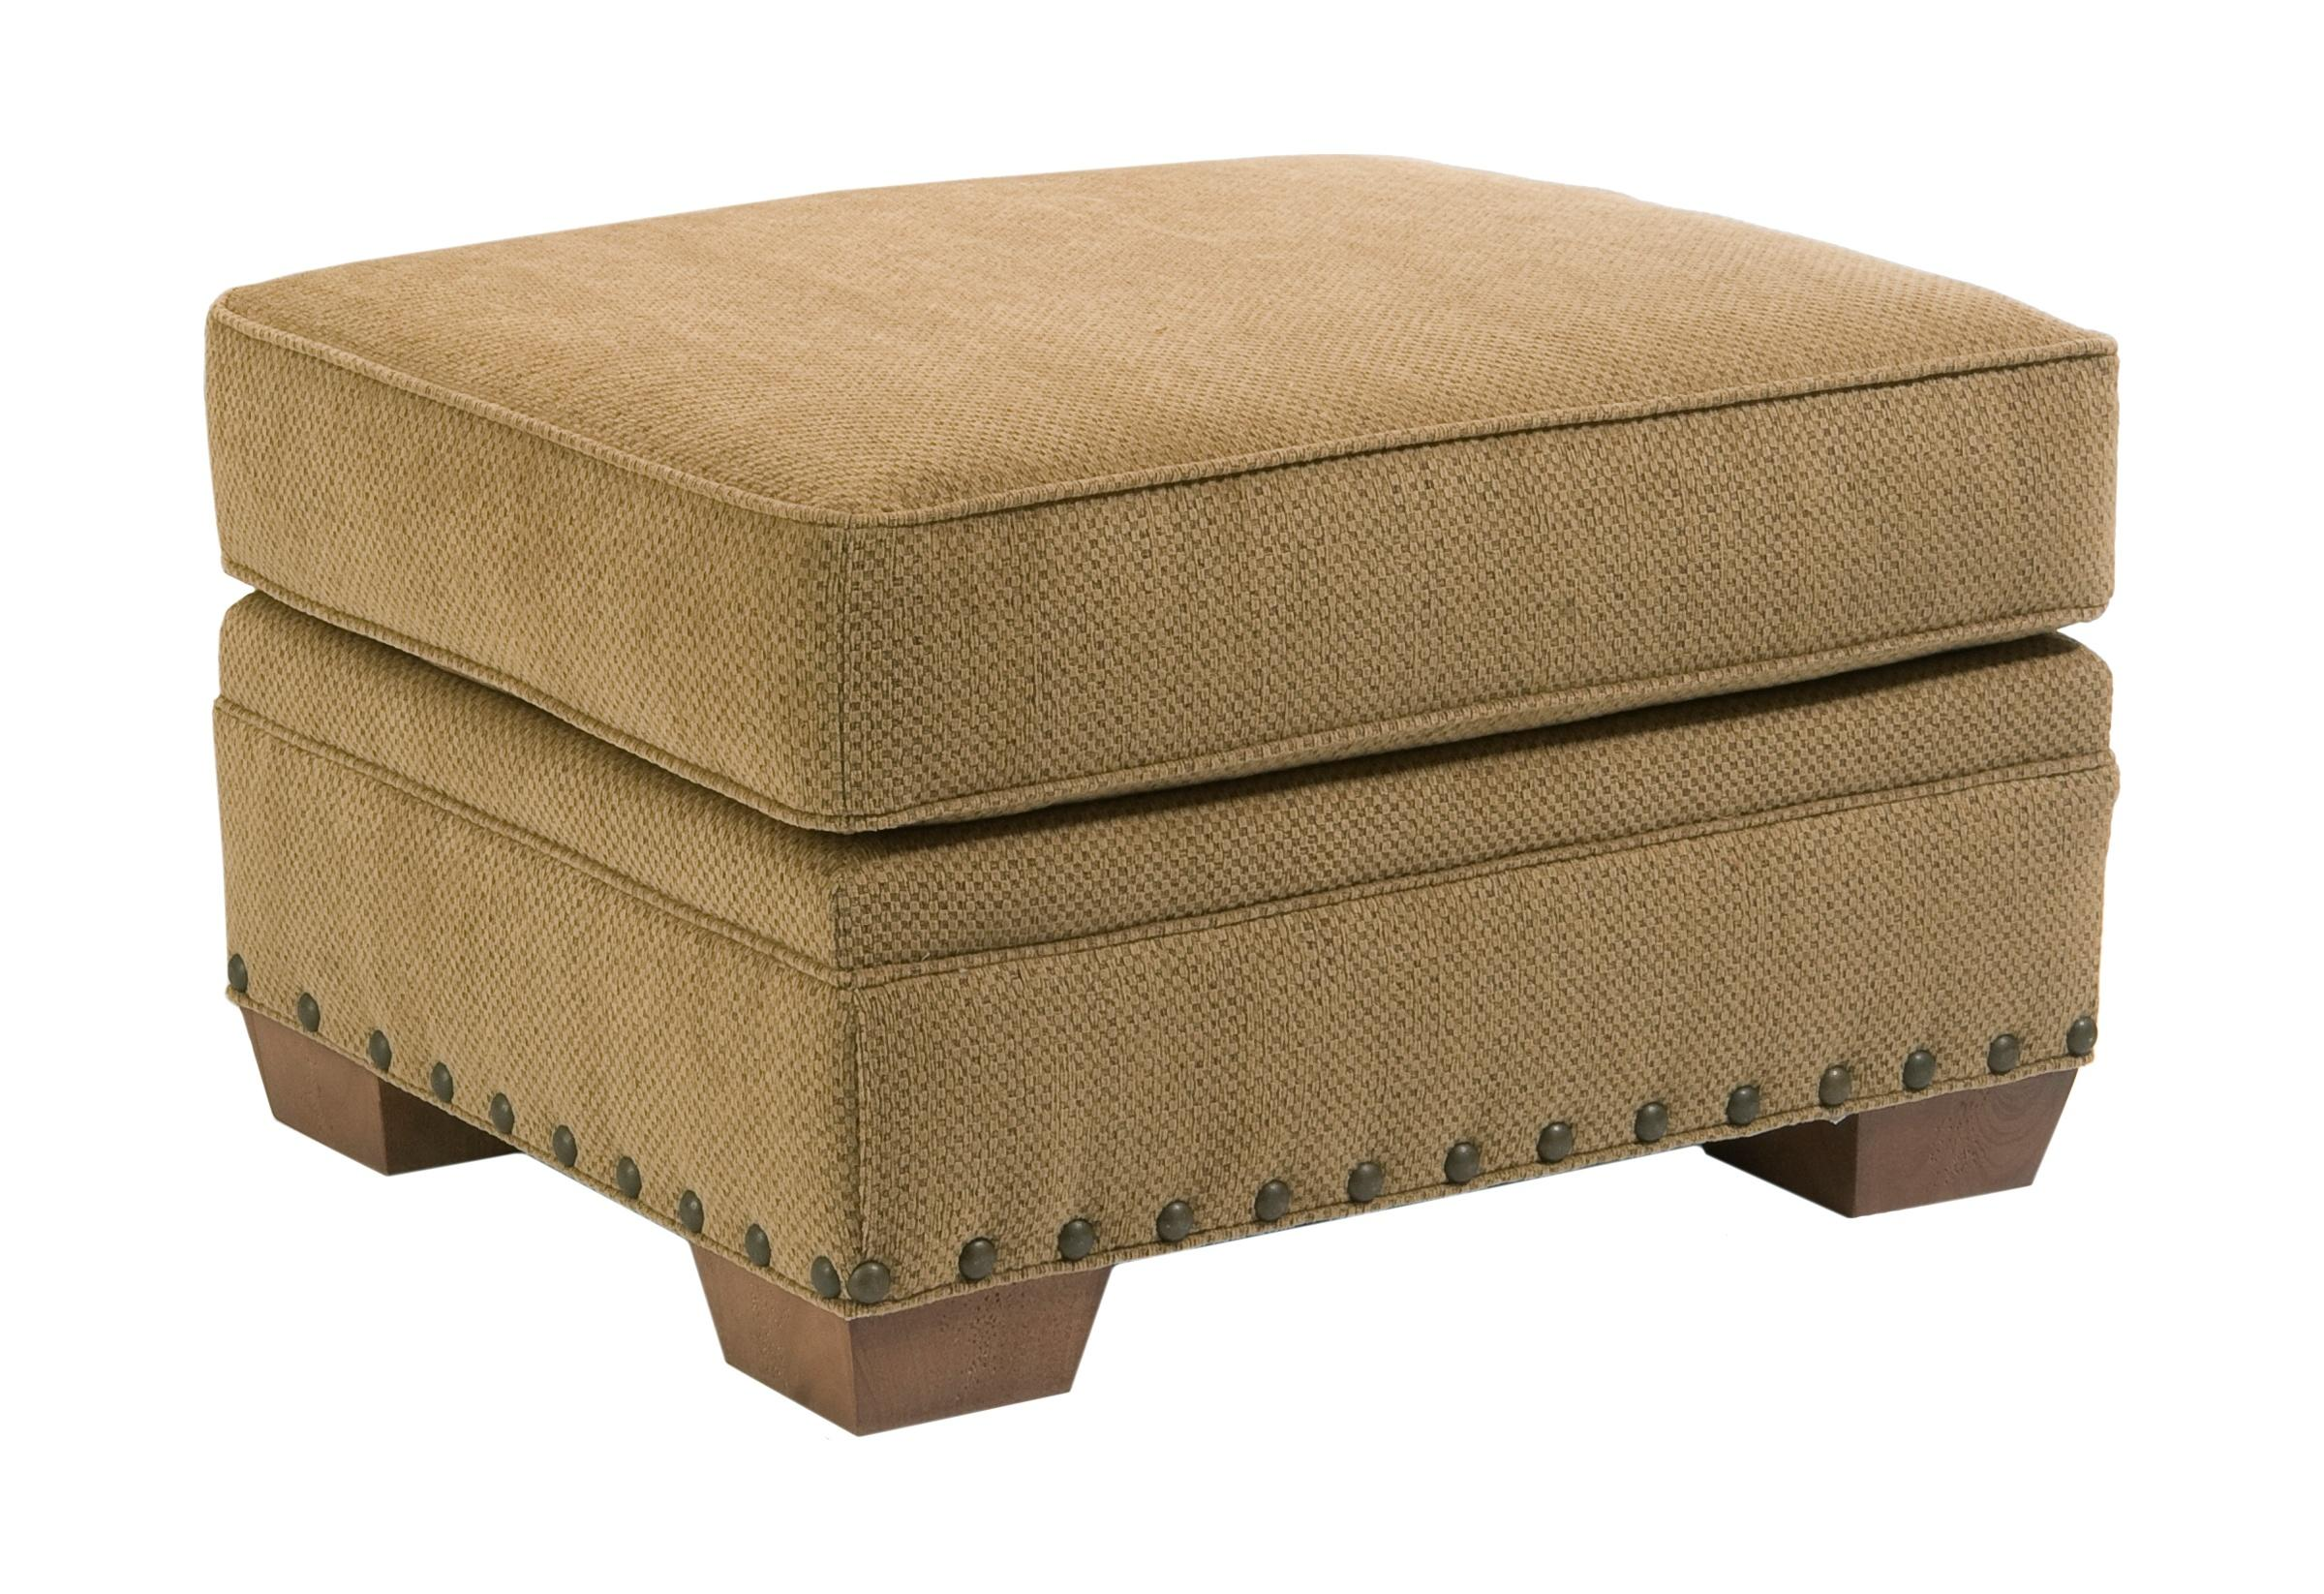 Broyhill Furniture Cambridge Casual Style Ottoman - Item Number: 5054-5